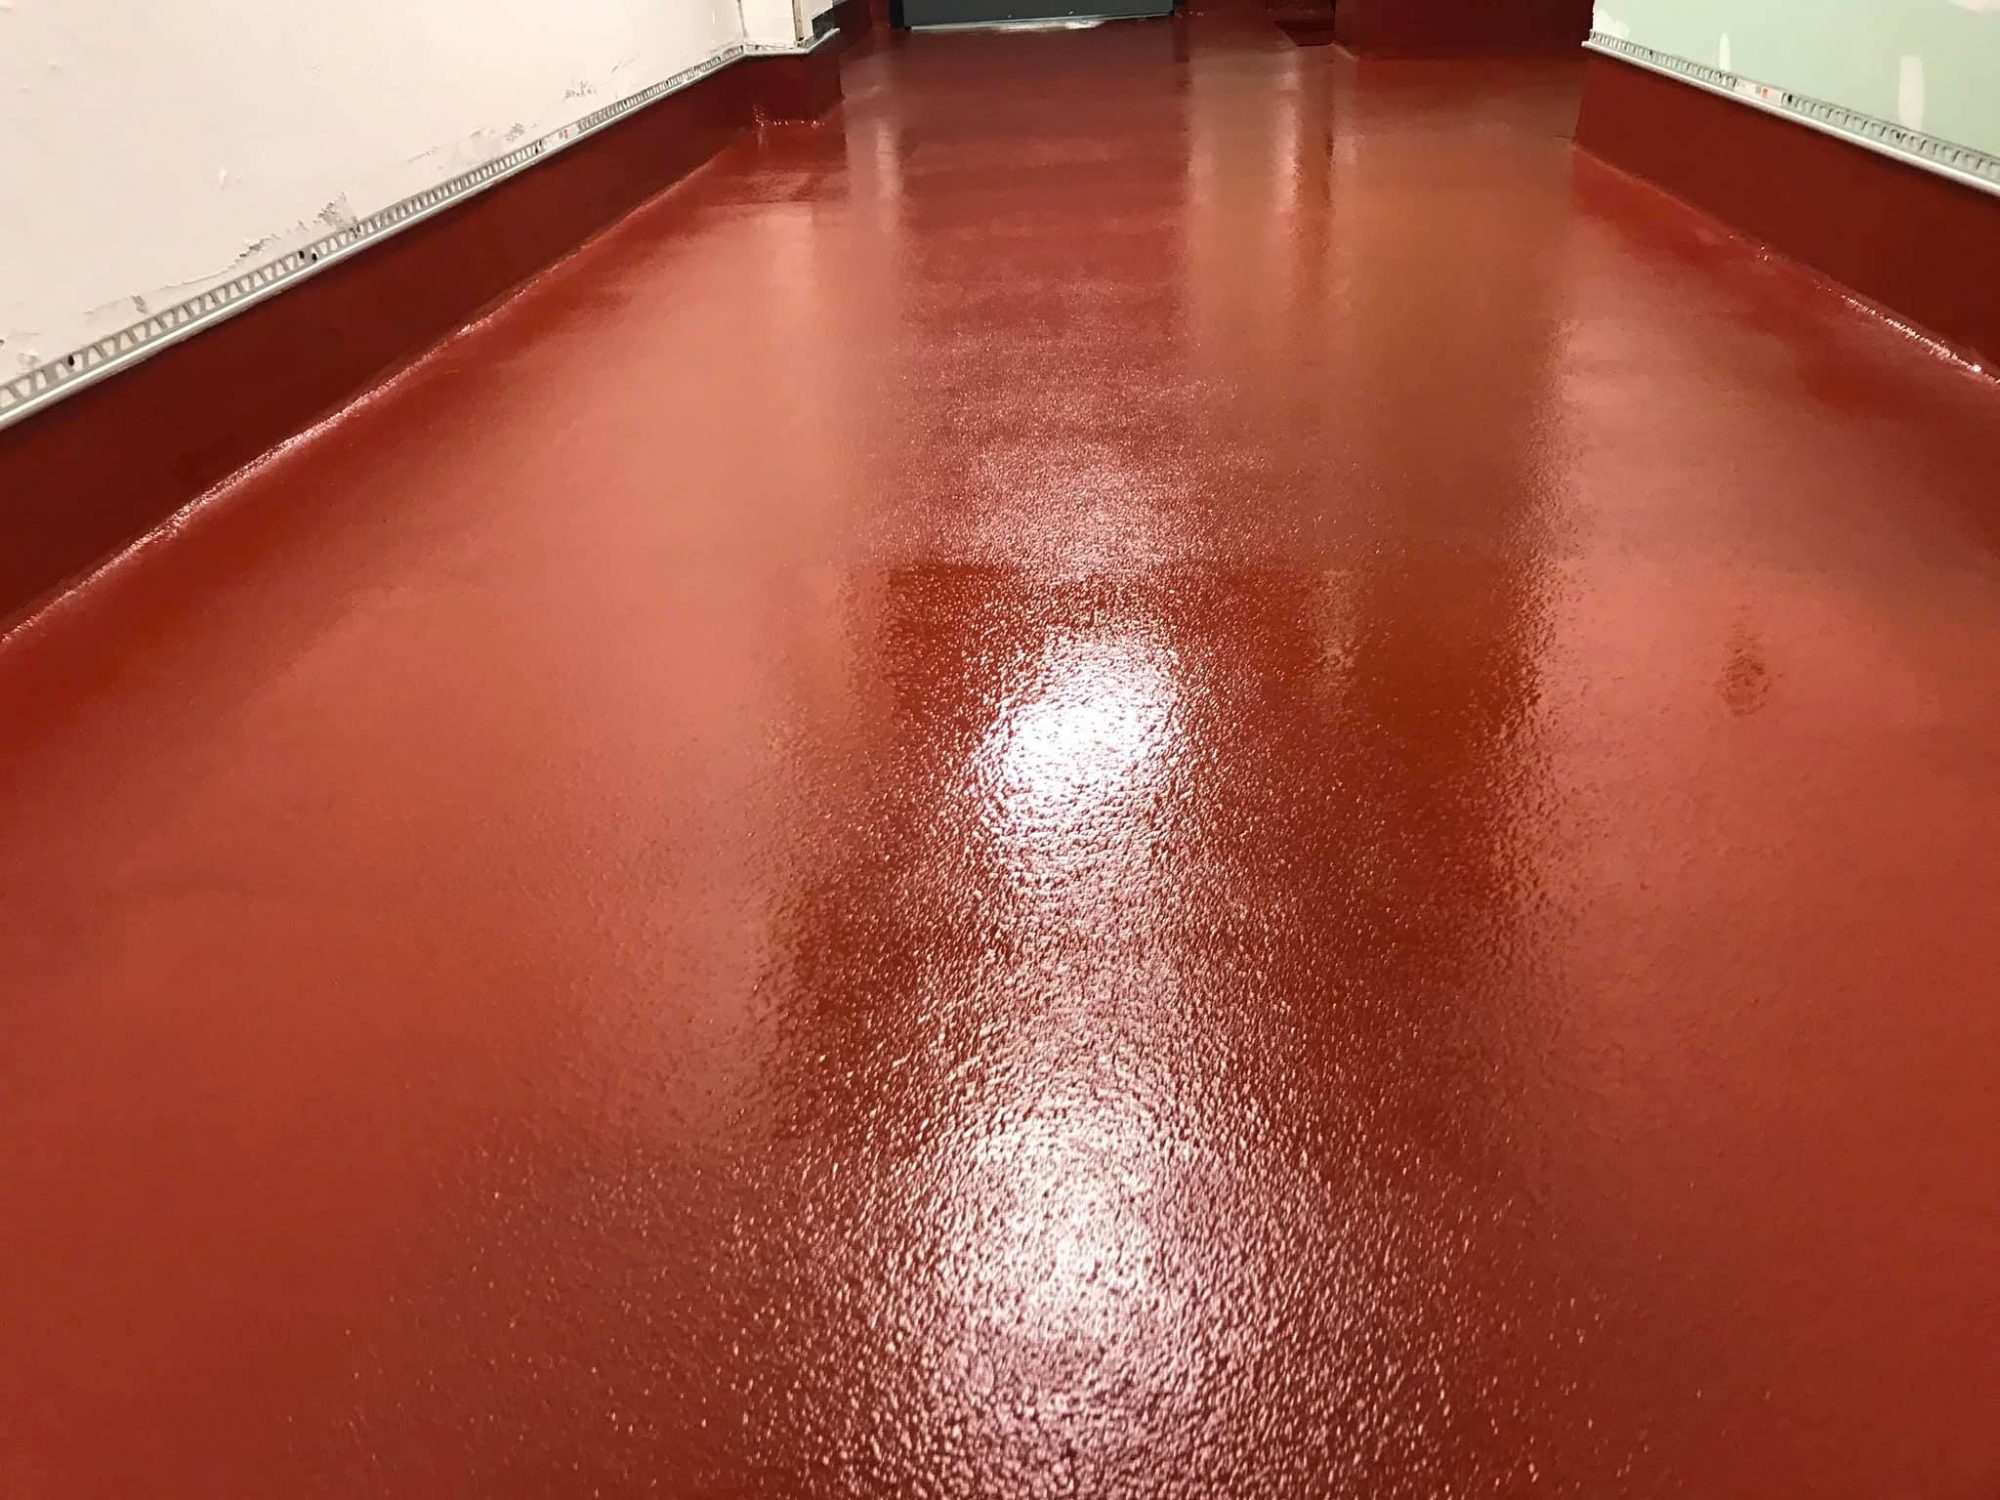 Commerical kitchen, remove quarry tile, replace with urethane concrete, urethane concrete, best commerical kitchen flooring solution